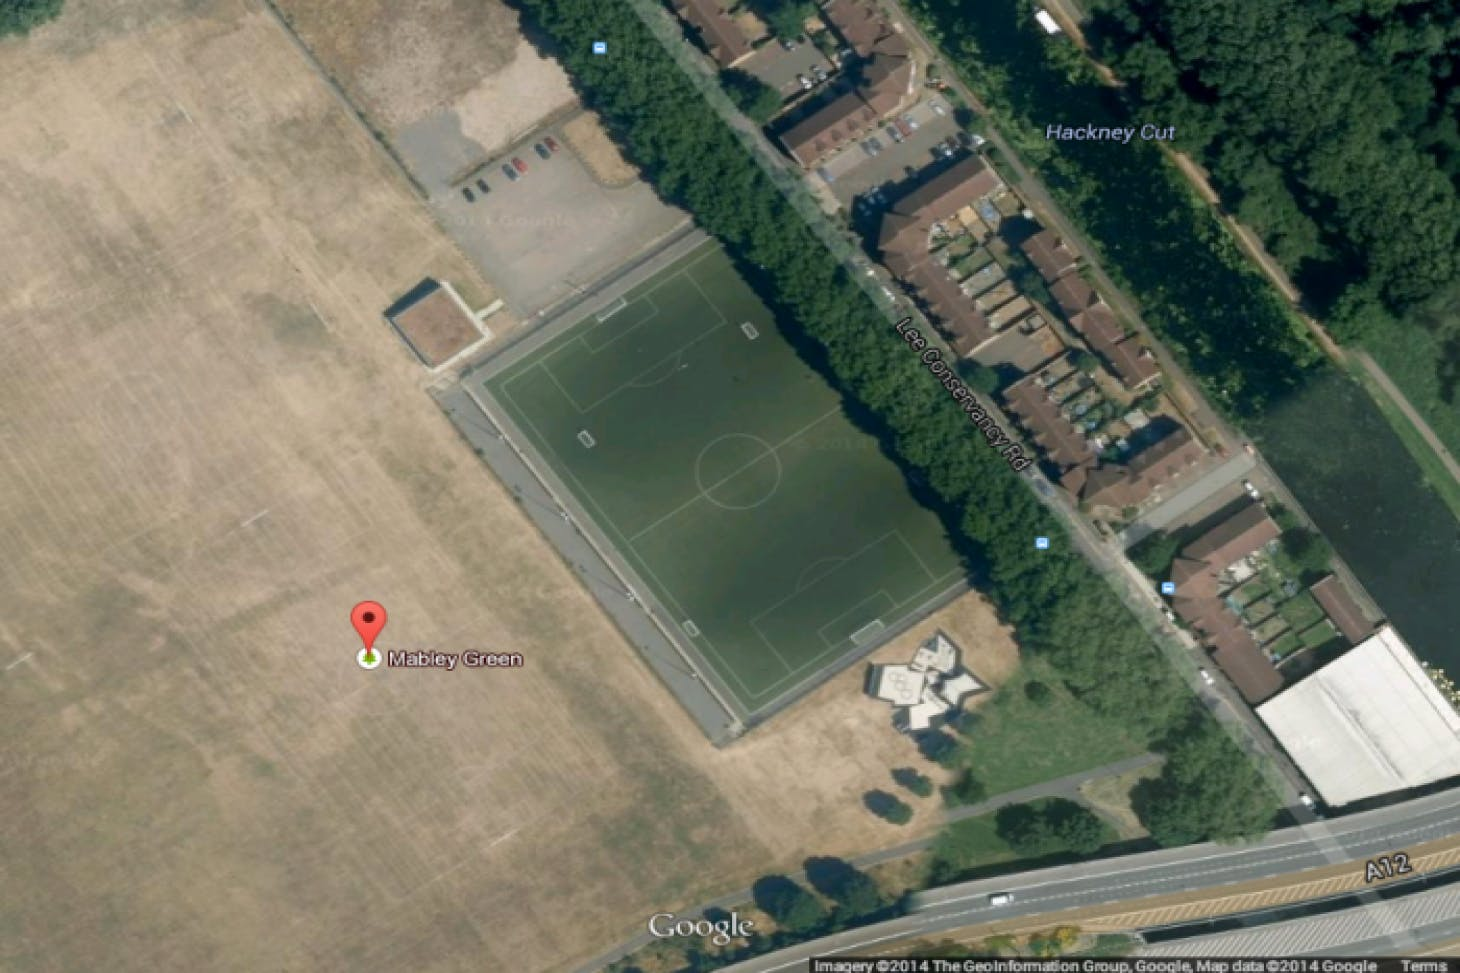 Mabley Green 11 a side   Grass football pitch